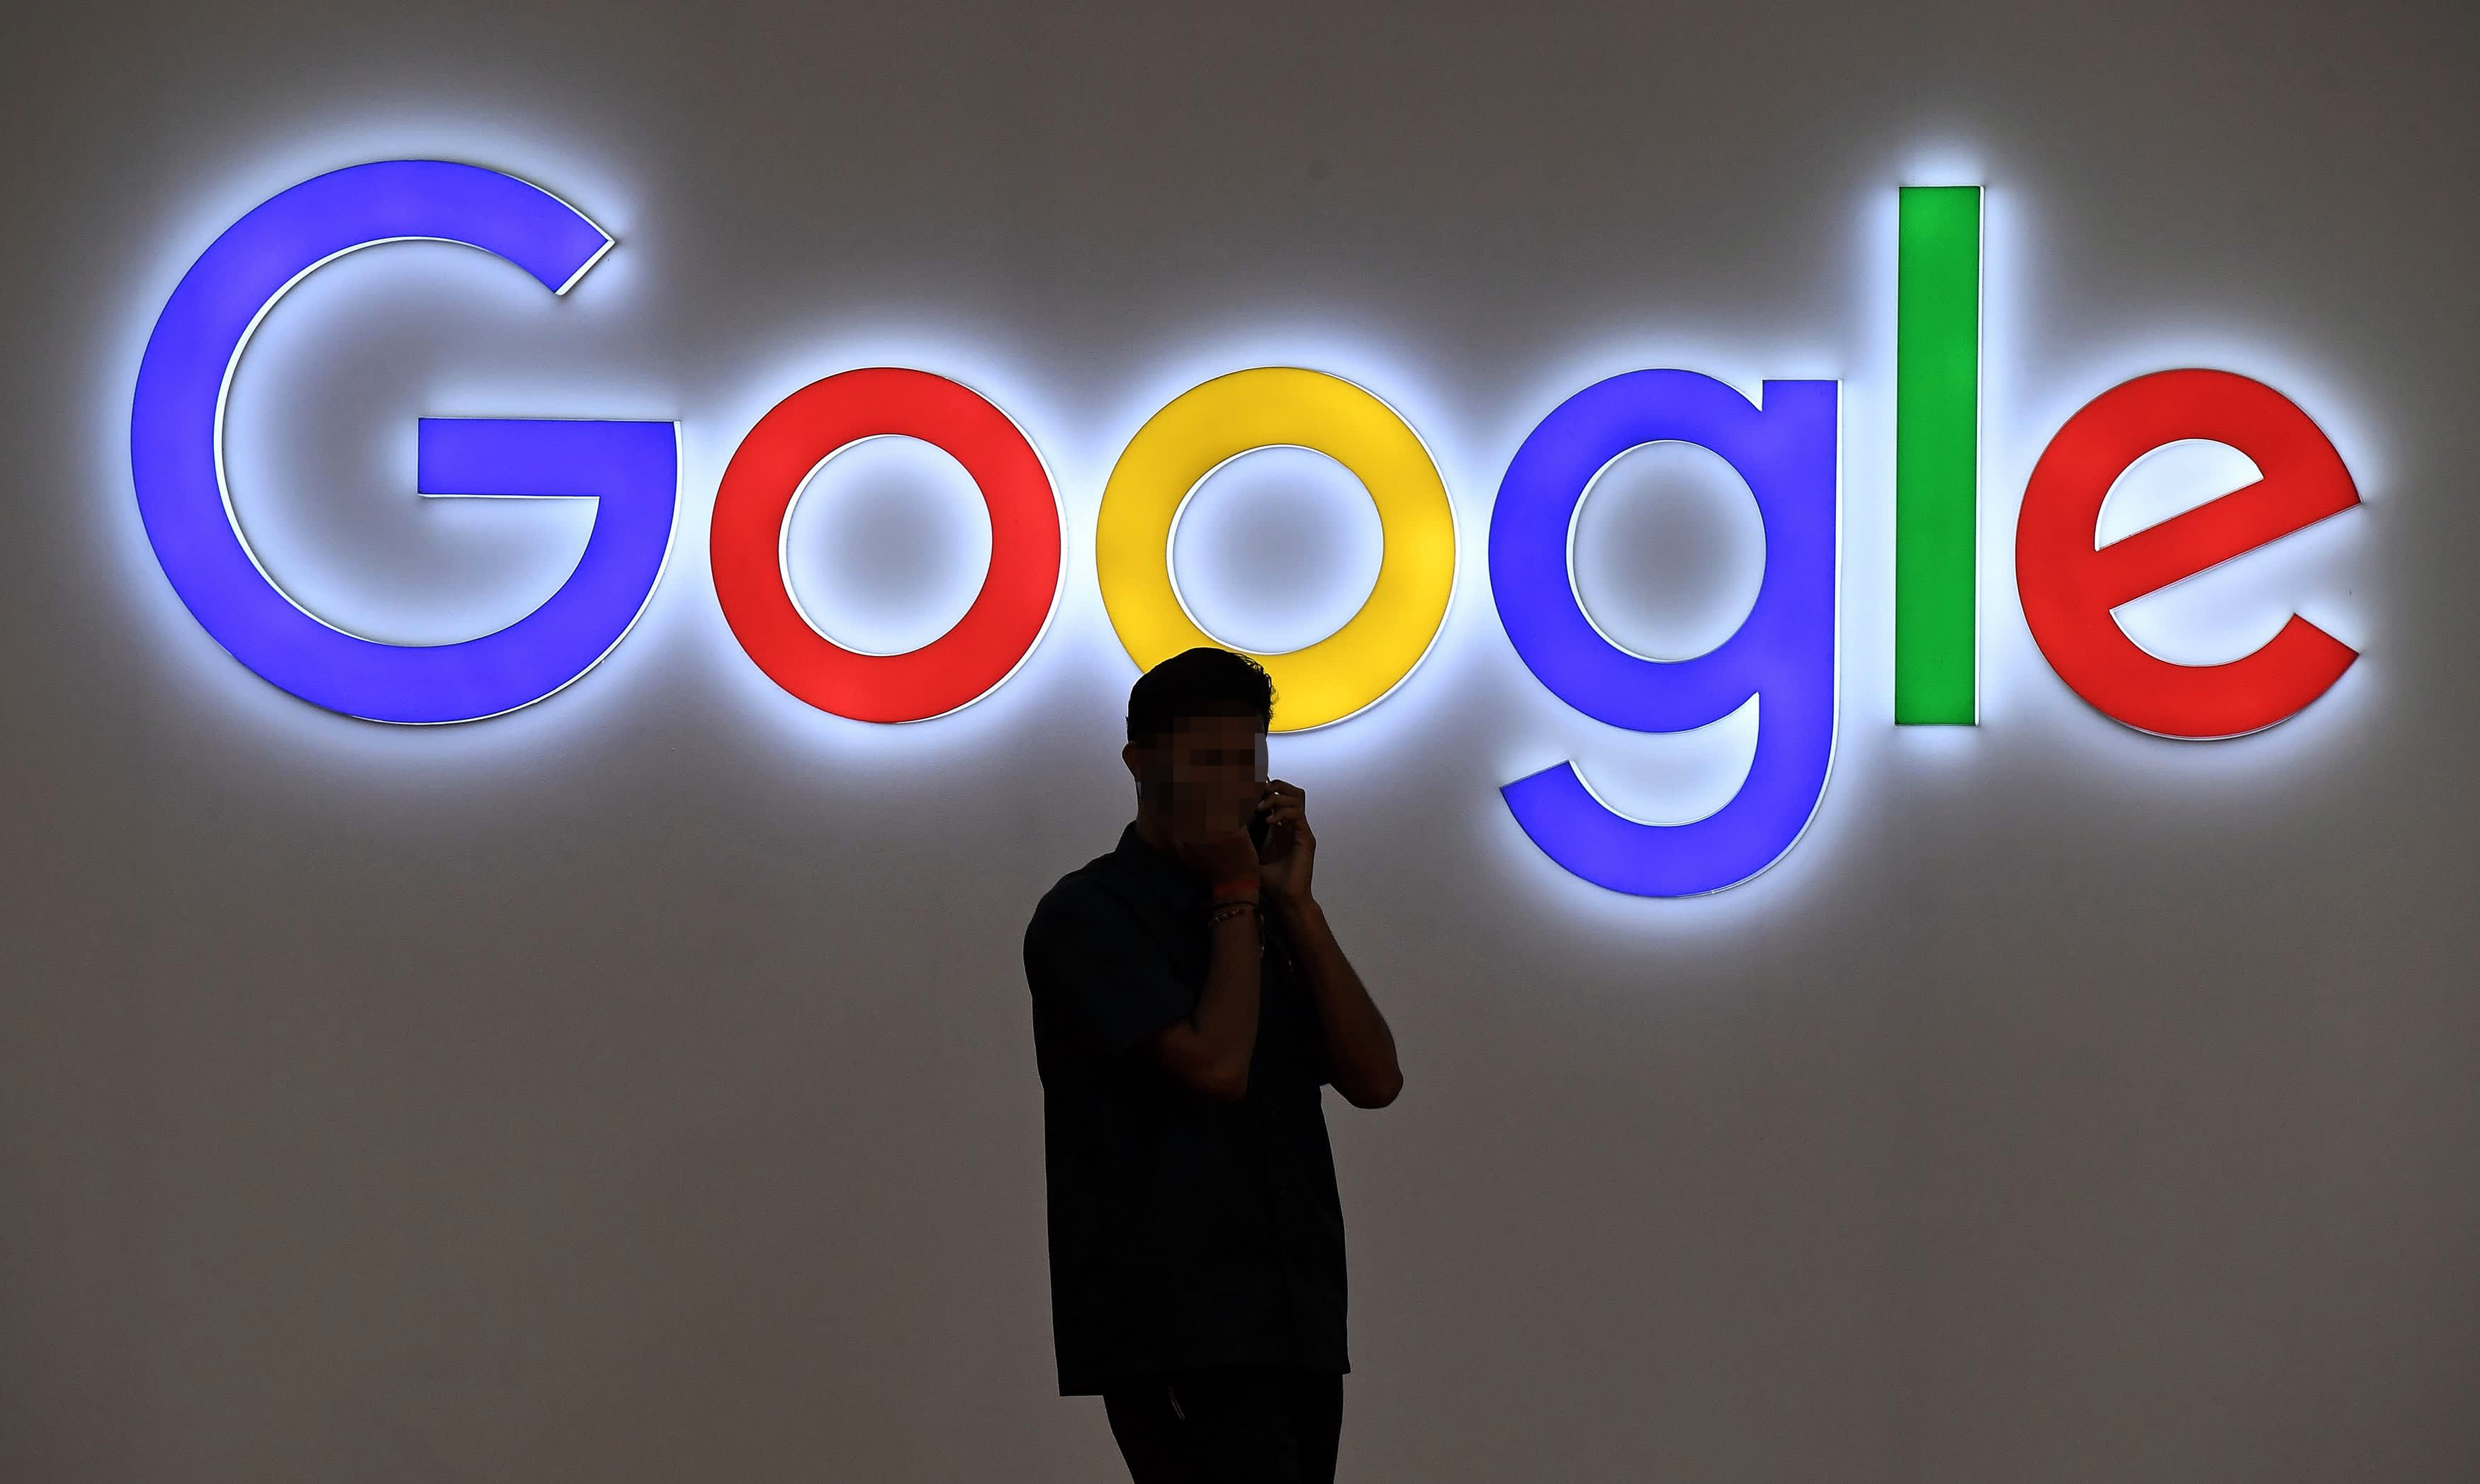 Google Cloud's new health-care venture is the latest reason to buy Alphabet, Cramer says